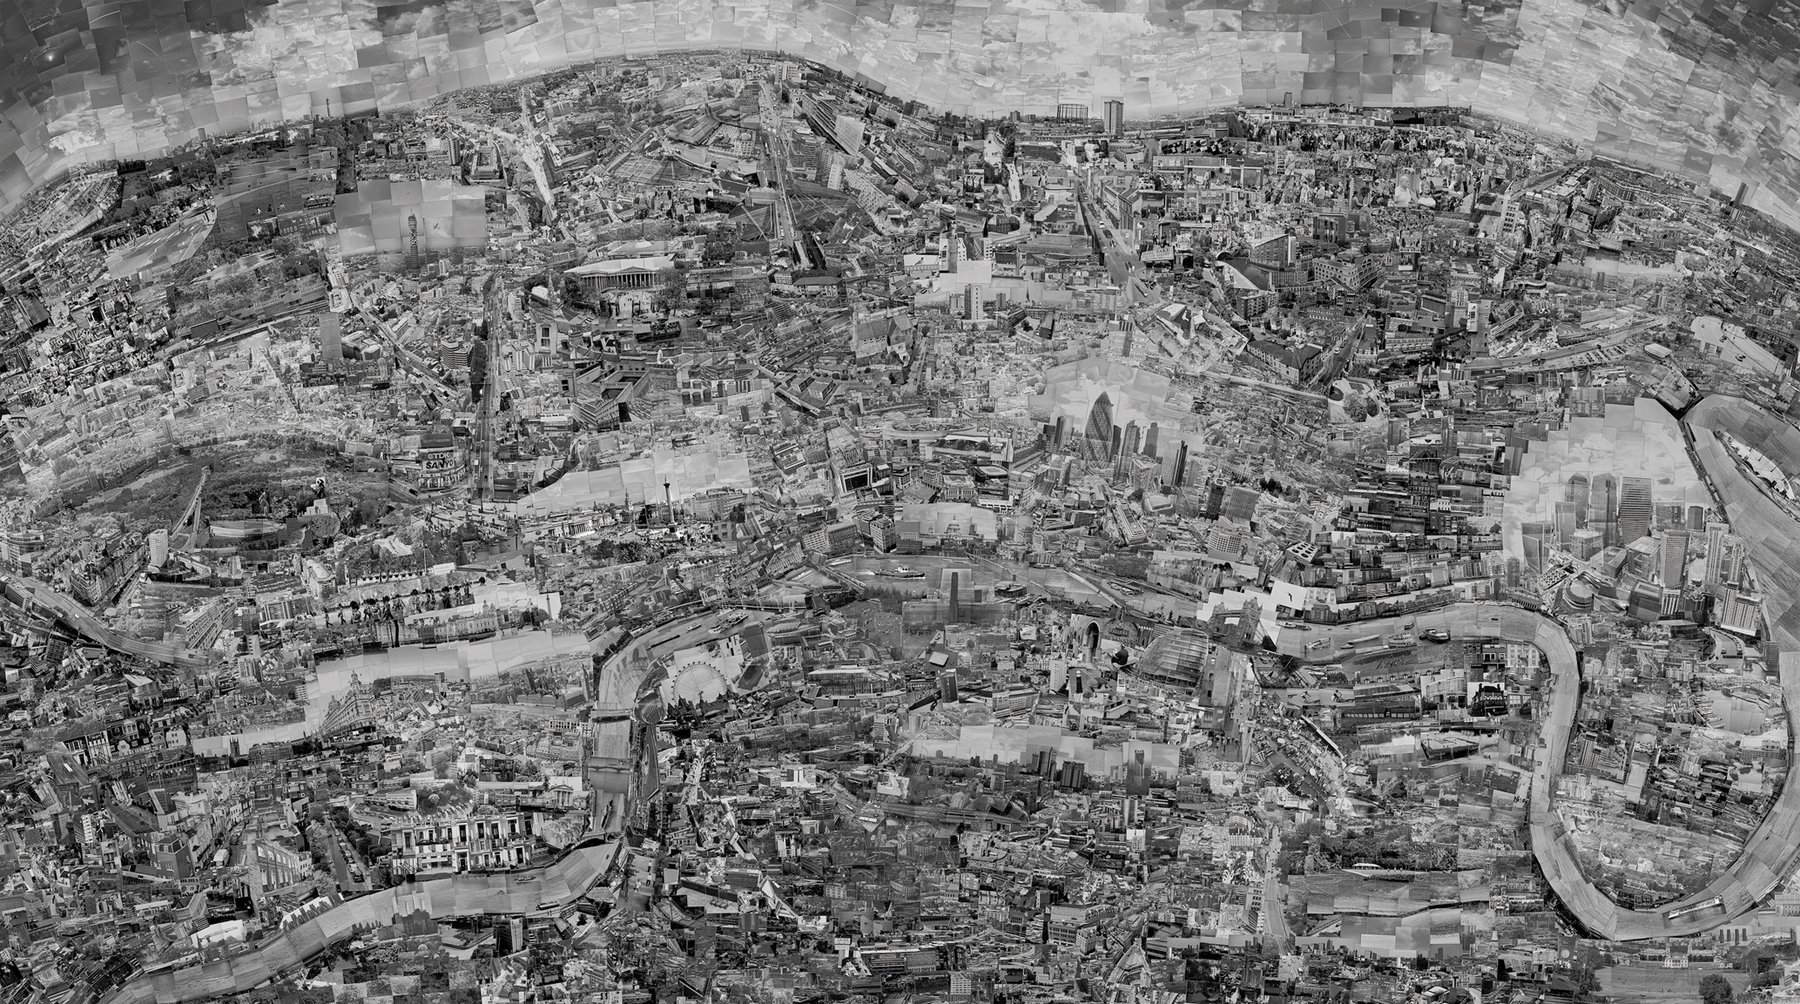 Artwork image, Sohei Nishino, London